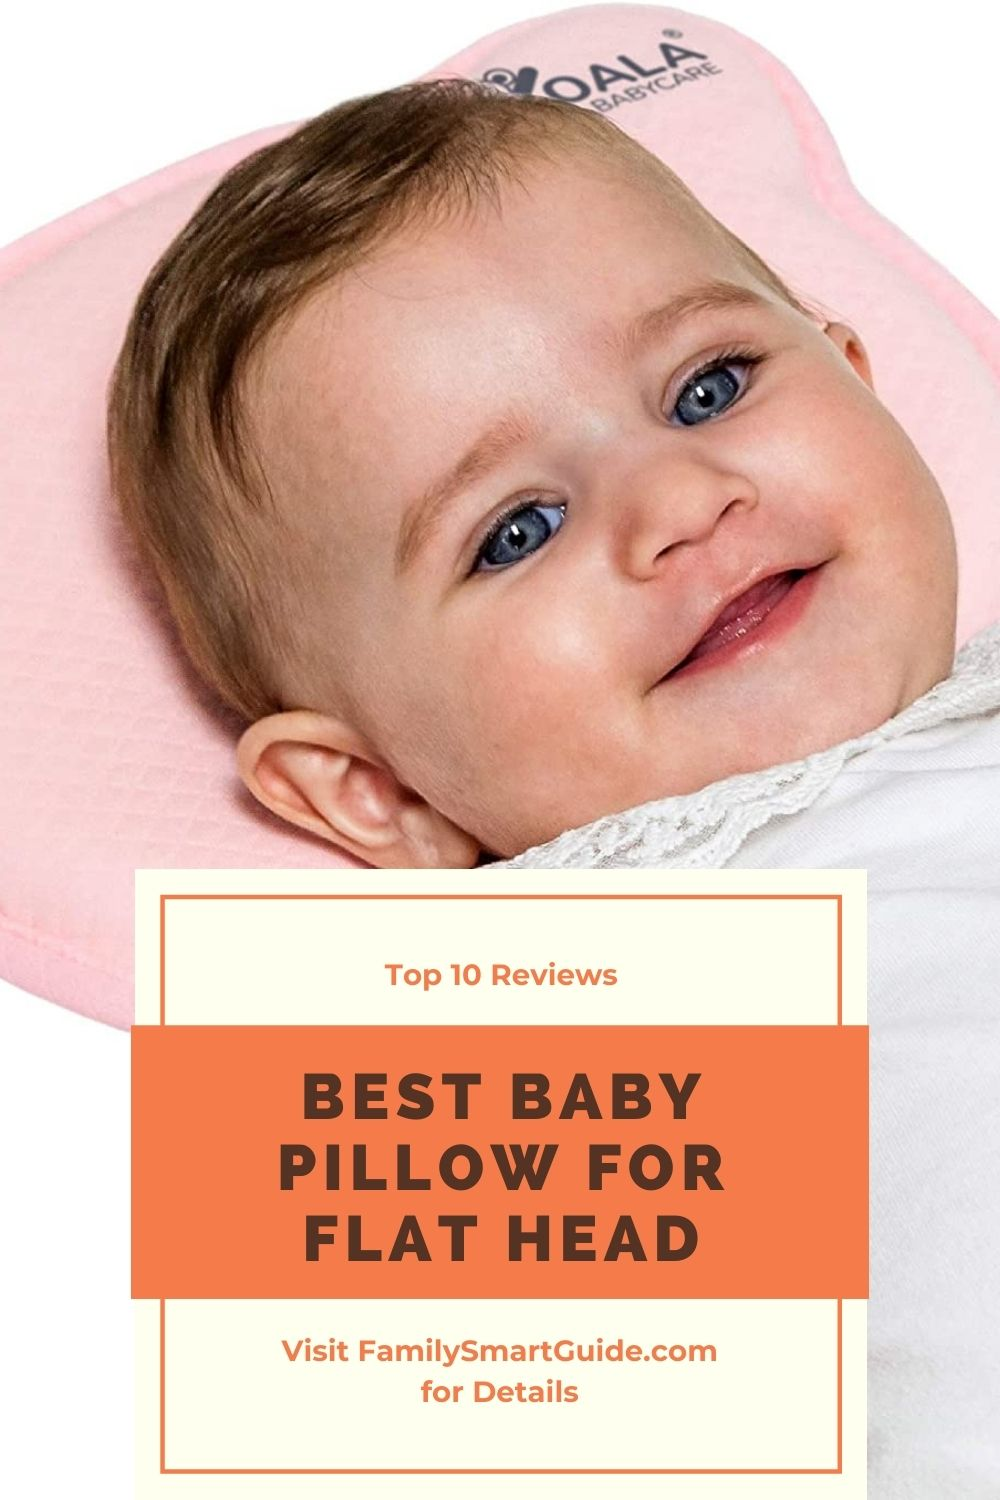 Top 10 Baby Pillow for Flat Head Reviews